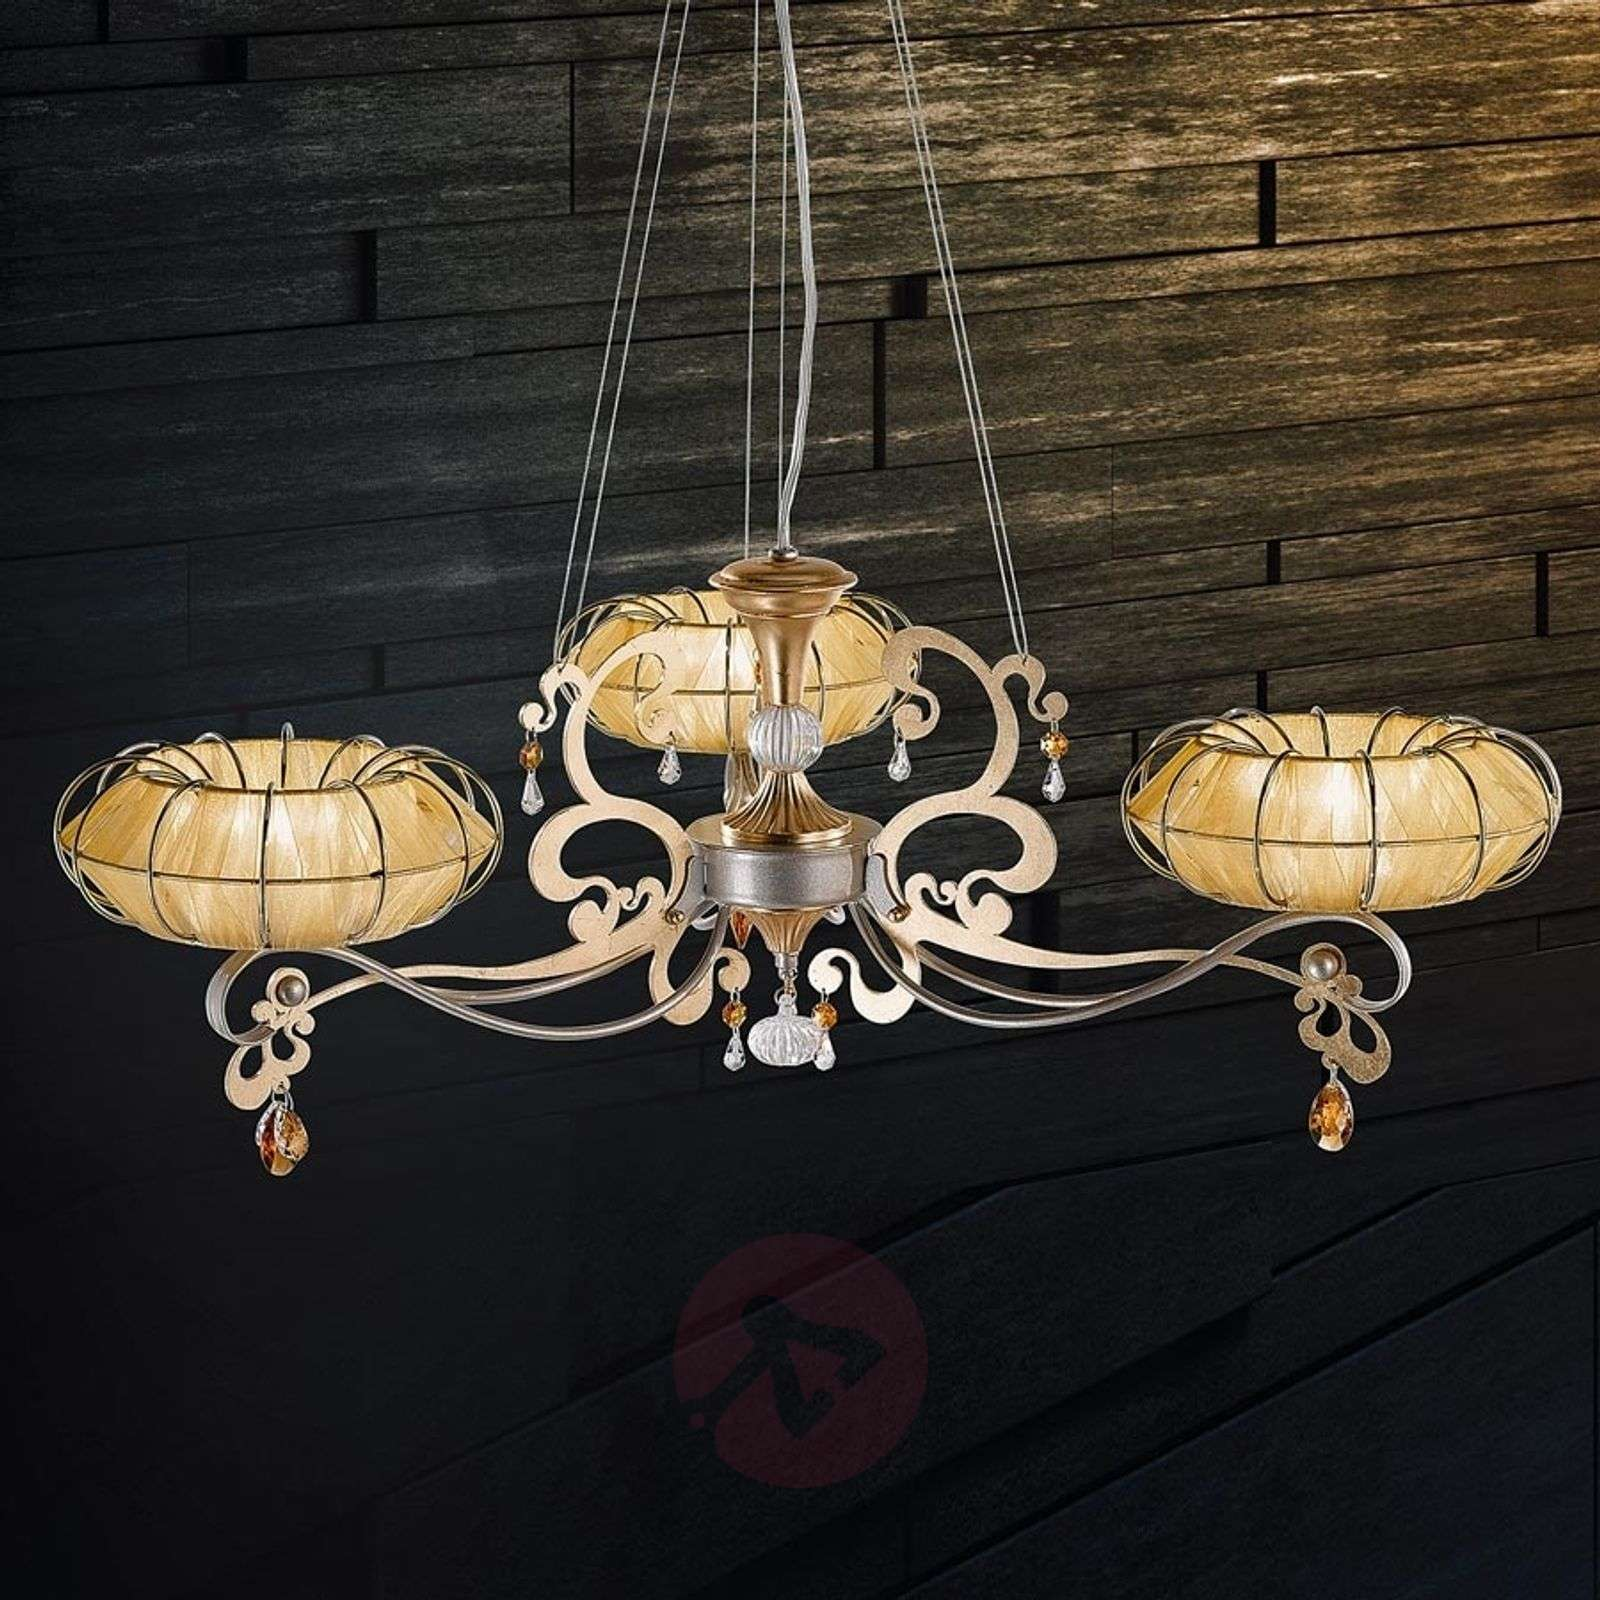 Lustre Dream-1548056-01